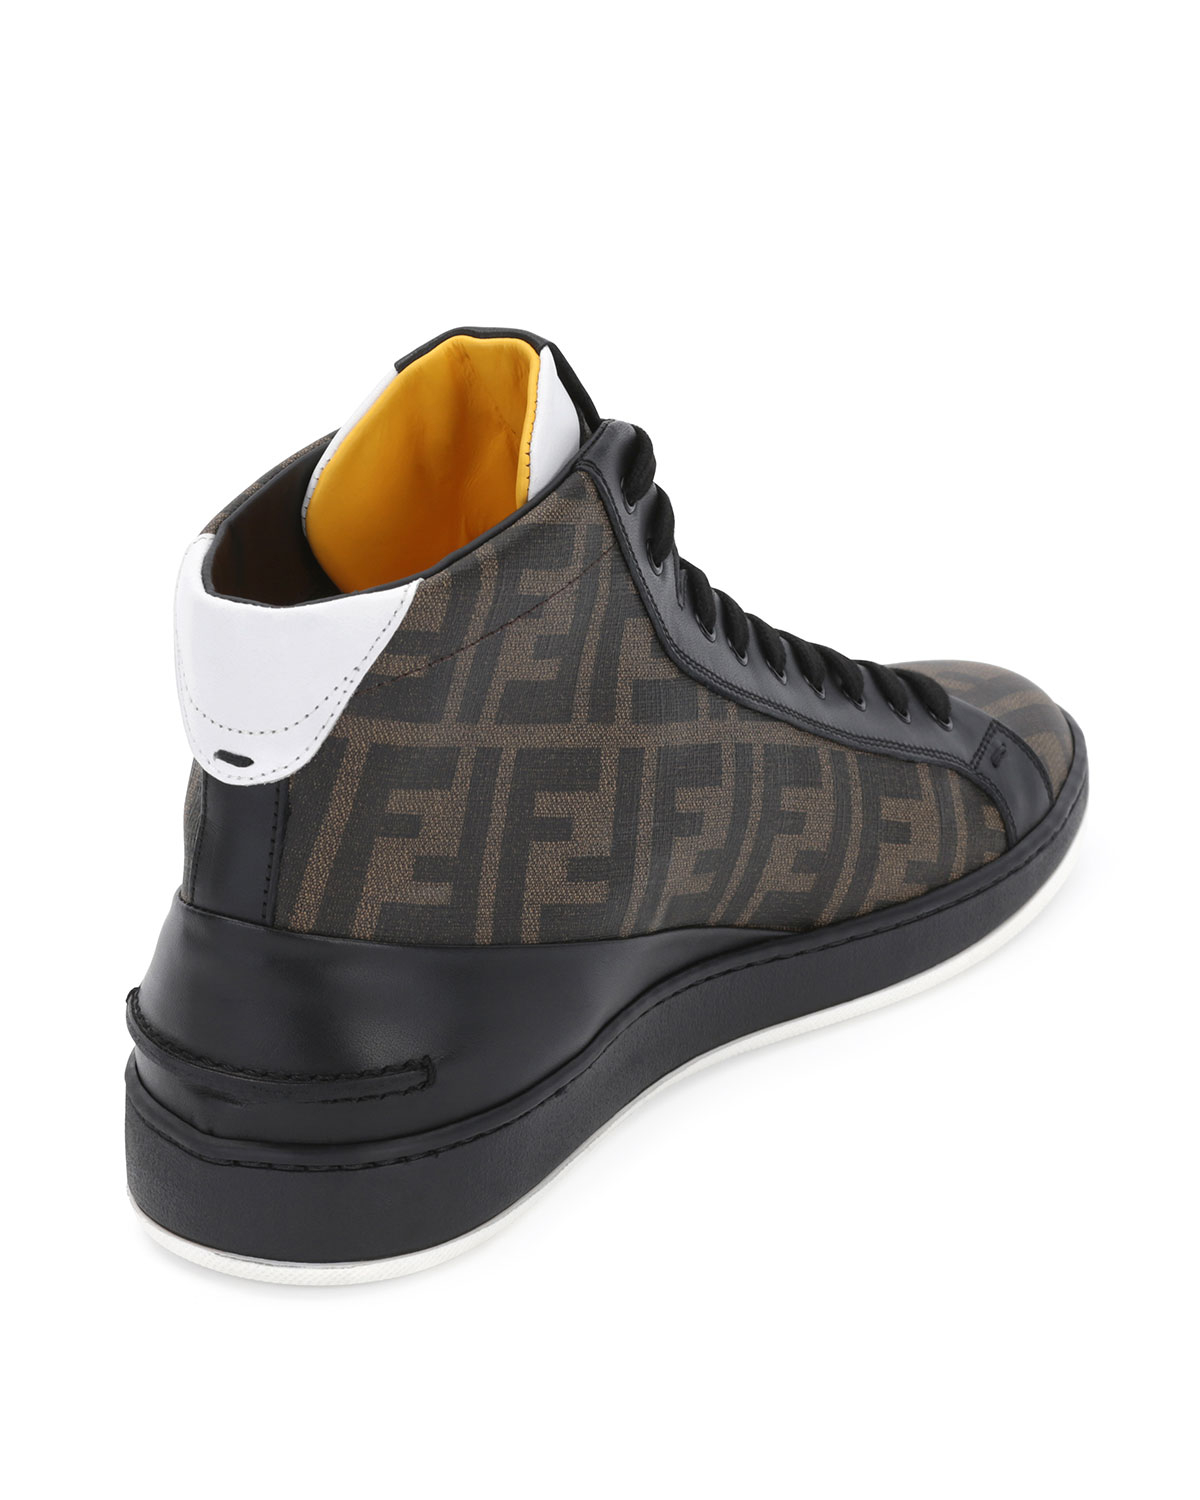 edab9ff0 Fendi Brown Zucca High-top Leather Sneaker for men